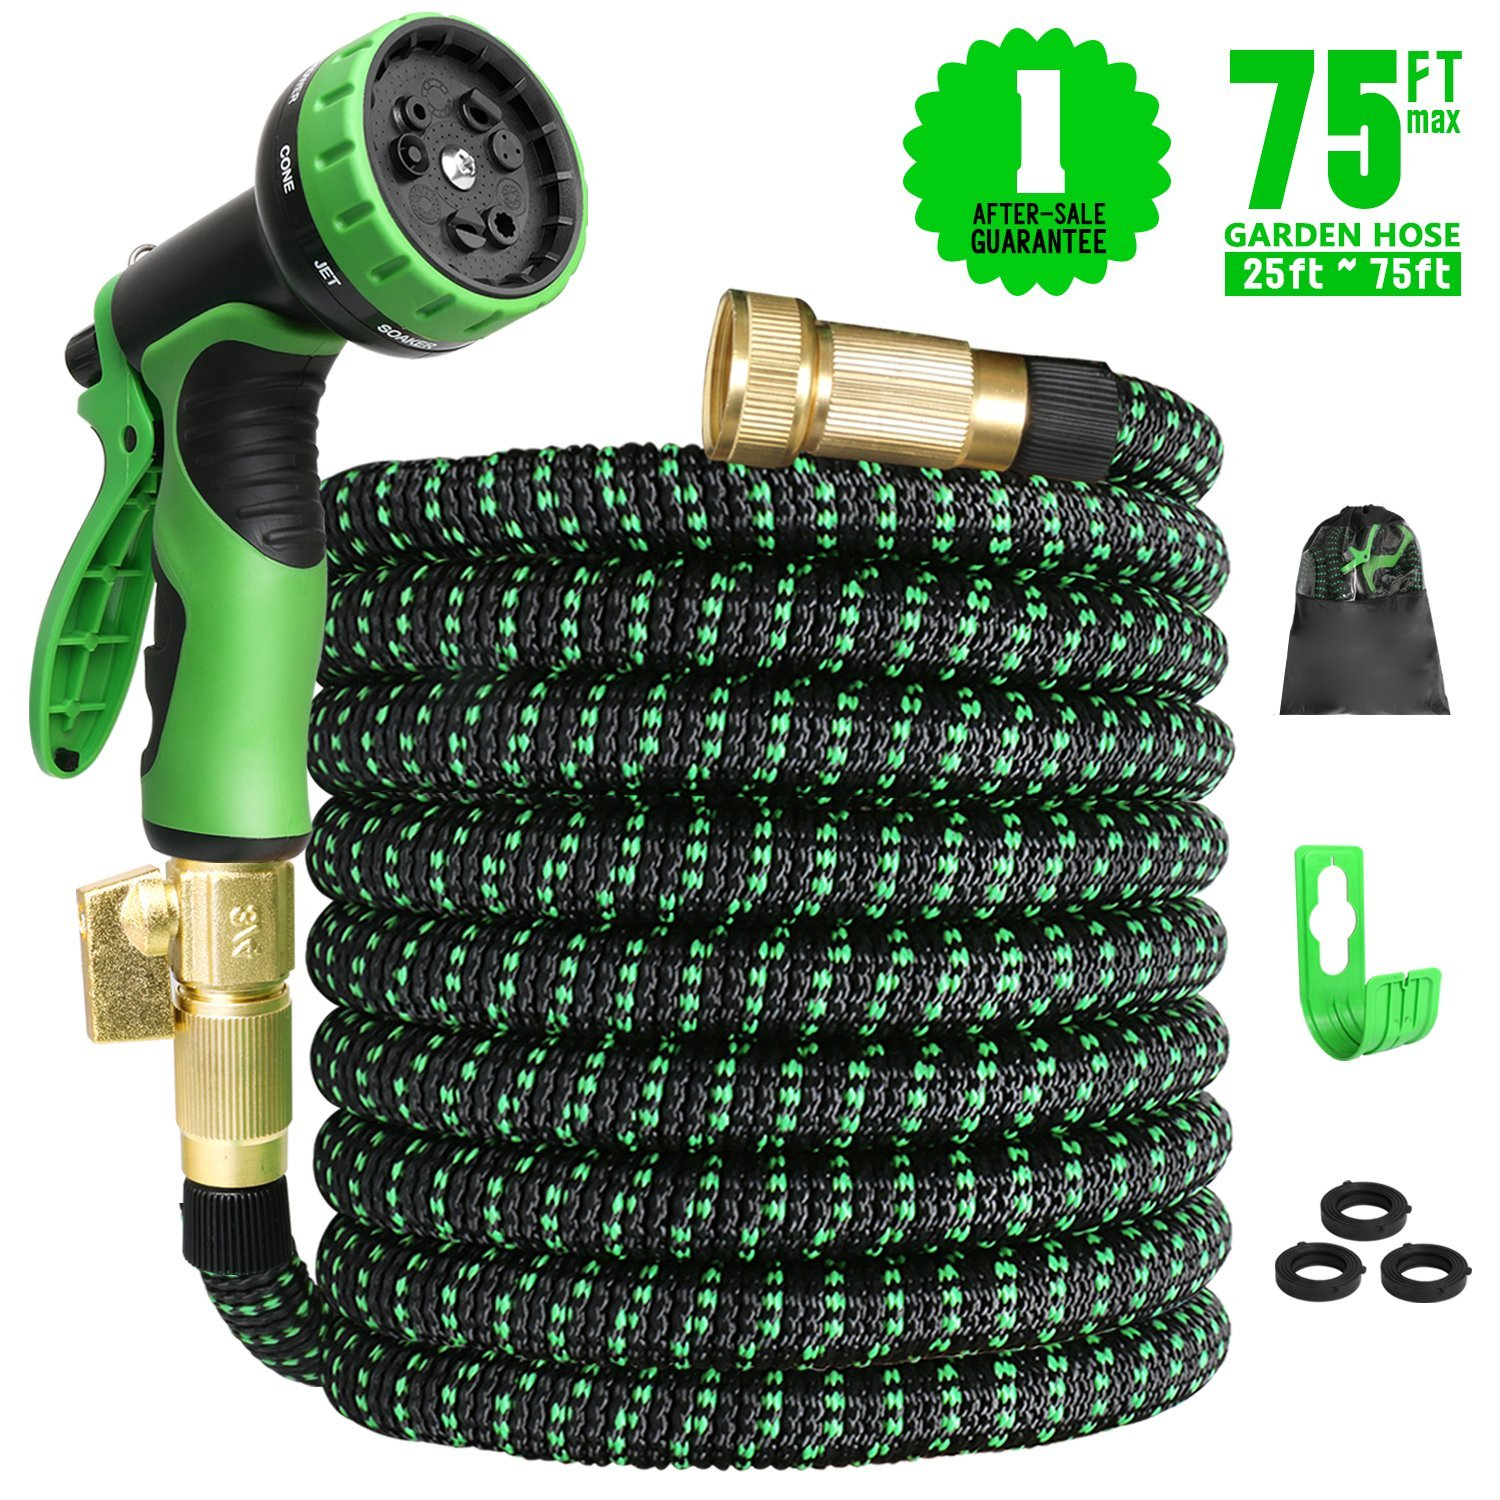 Expandable Garden Hose 75ft Expanding Water Hose, 75' Flexible Lightweight Gardening Hose with 3/4 Inch Strong Solid Brass Fittings 9 Function Hose Nozzle, Outdoor Yard Cloth Hoses(1 Year Guarantee)